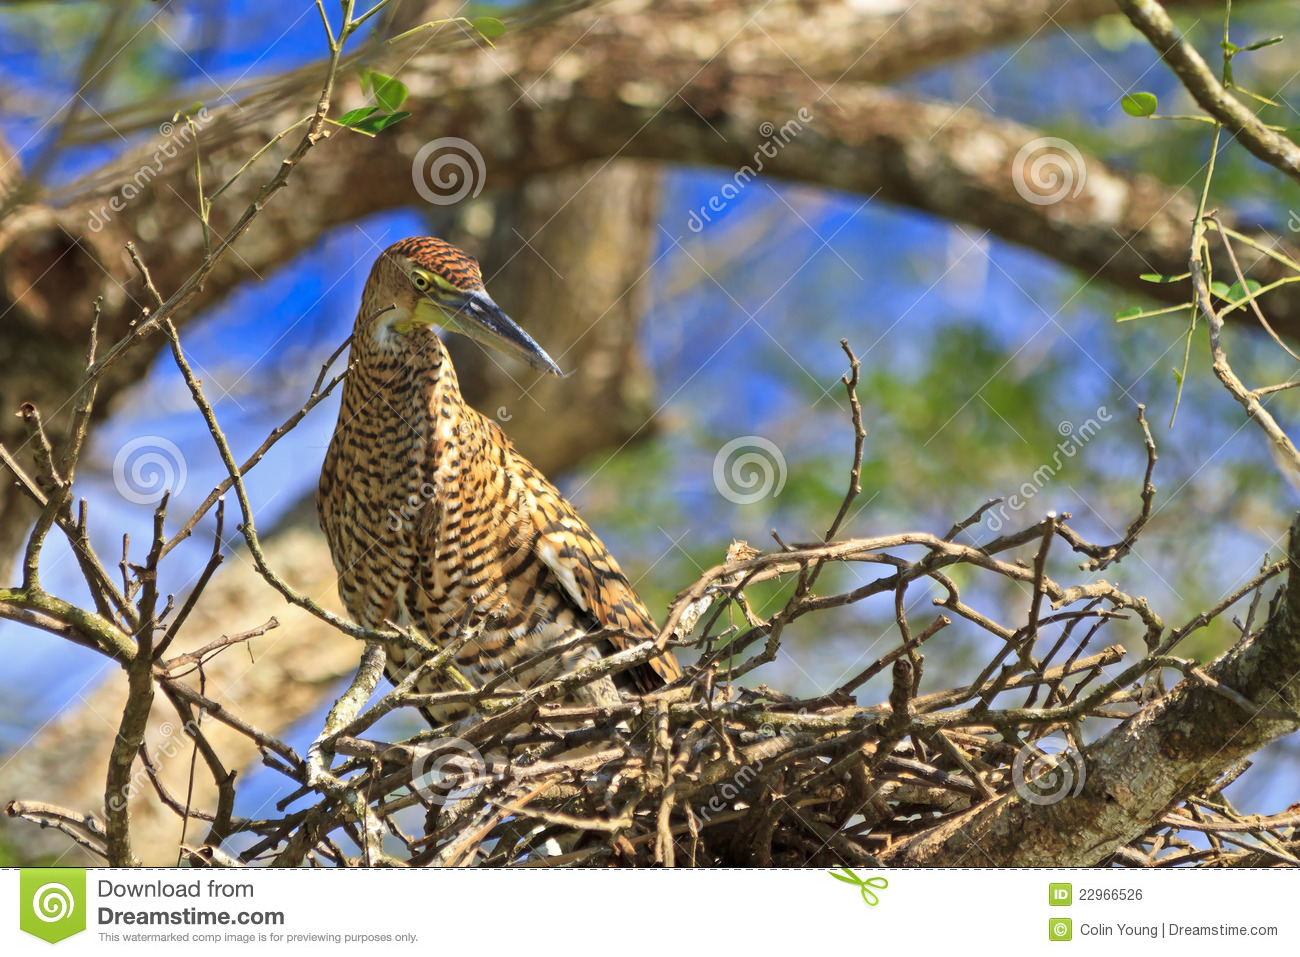 Tiger Heron in Nest